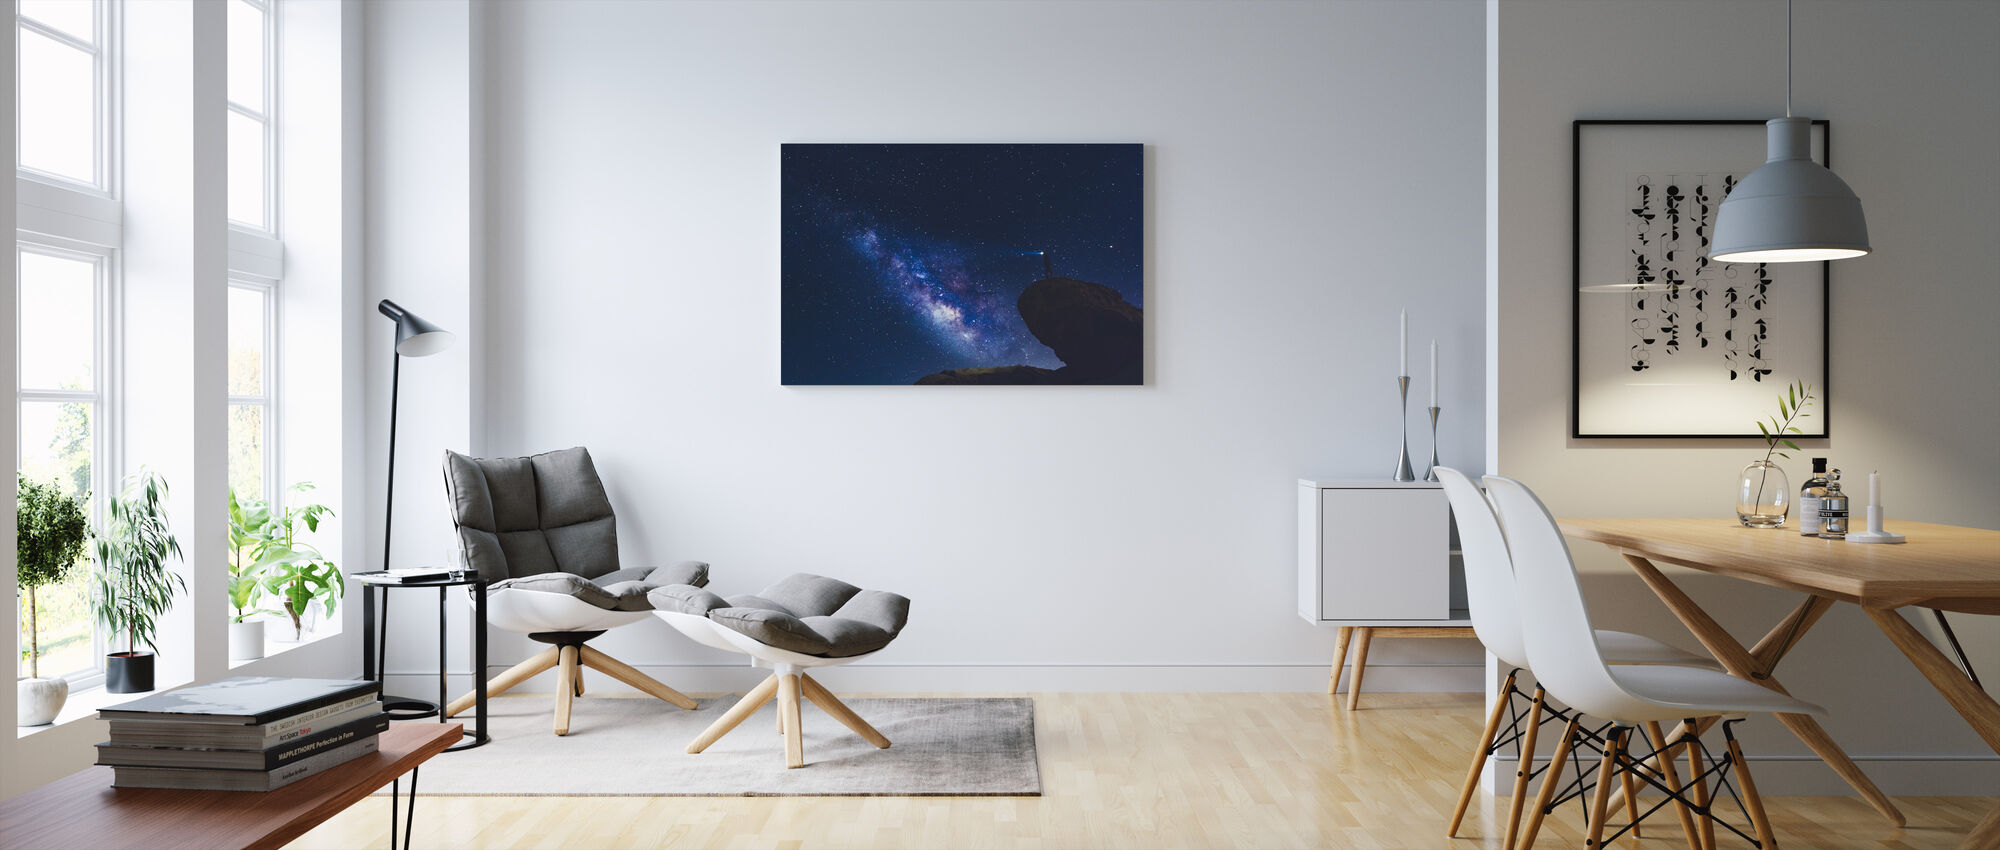 Californian Star Searching - Canvas print - Living Room